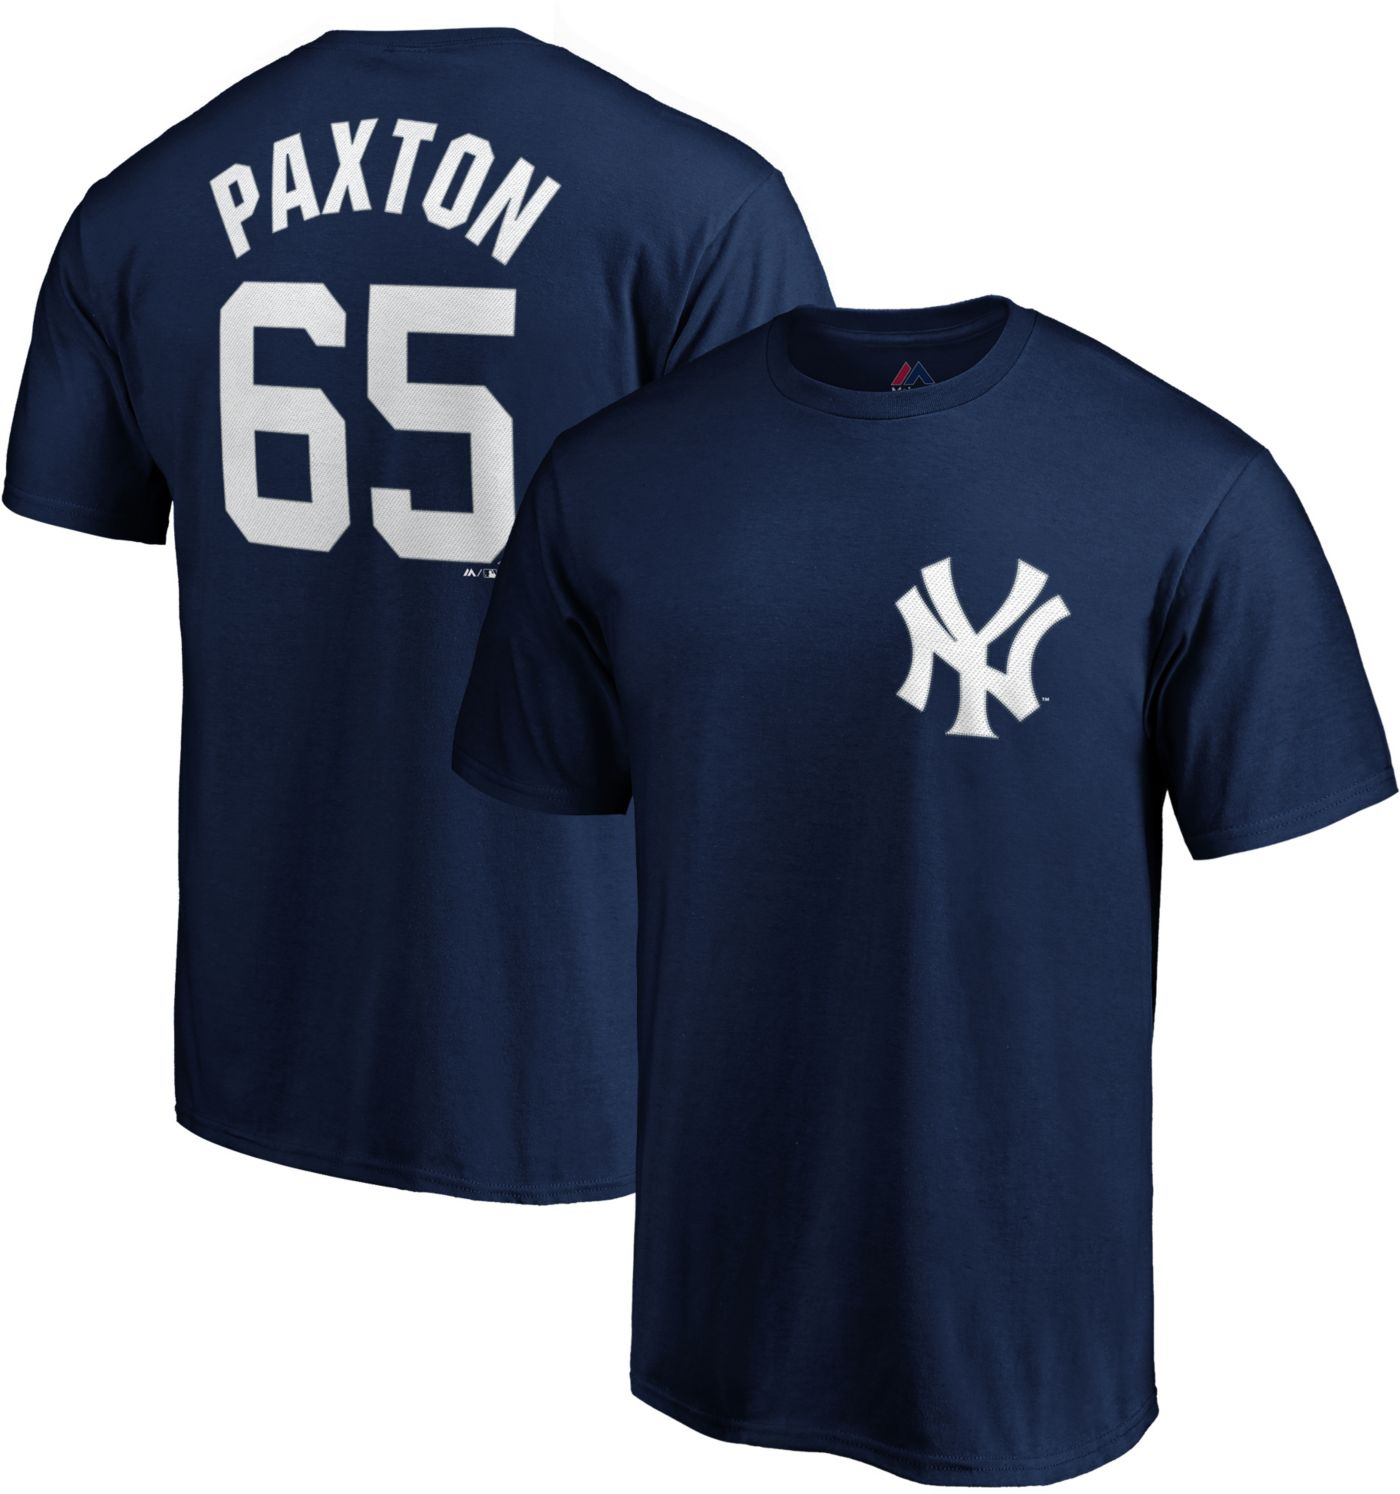 Majestic Men's New York Yankees James Paxton #65 Navy T-Shirt